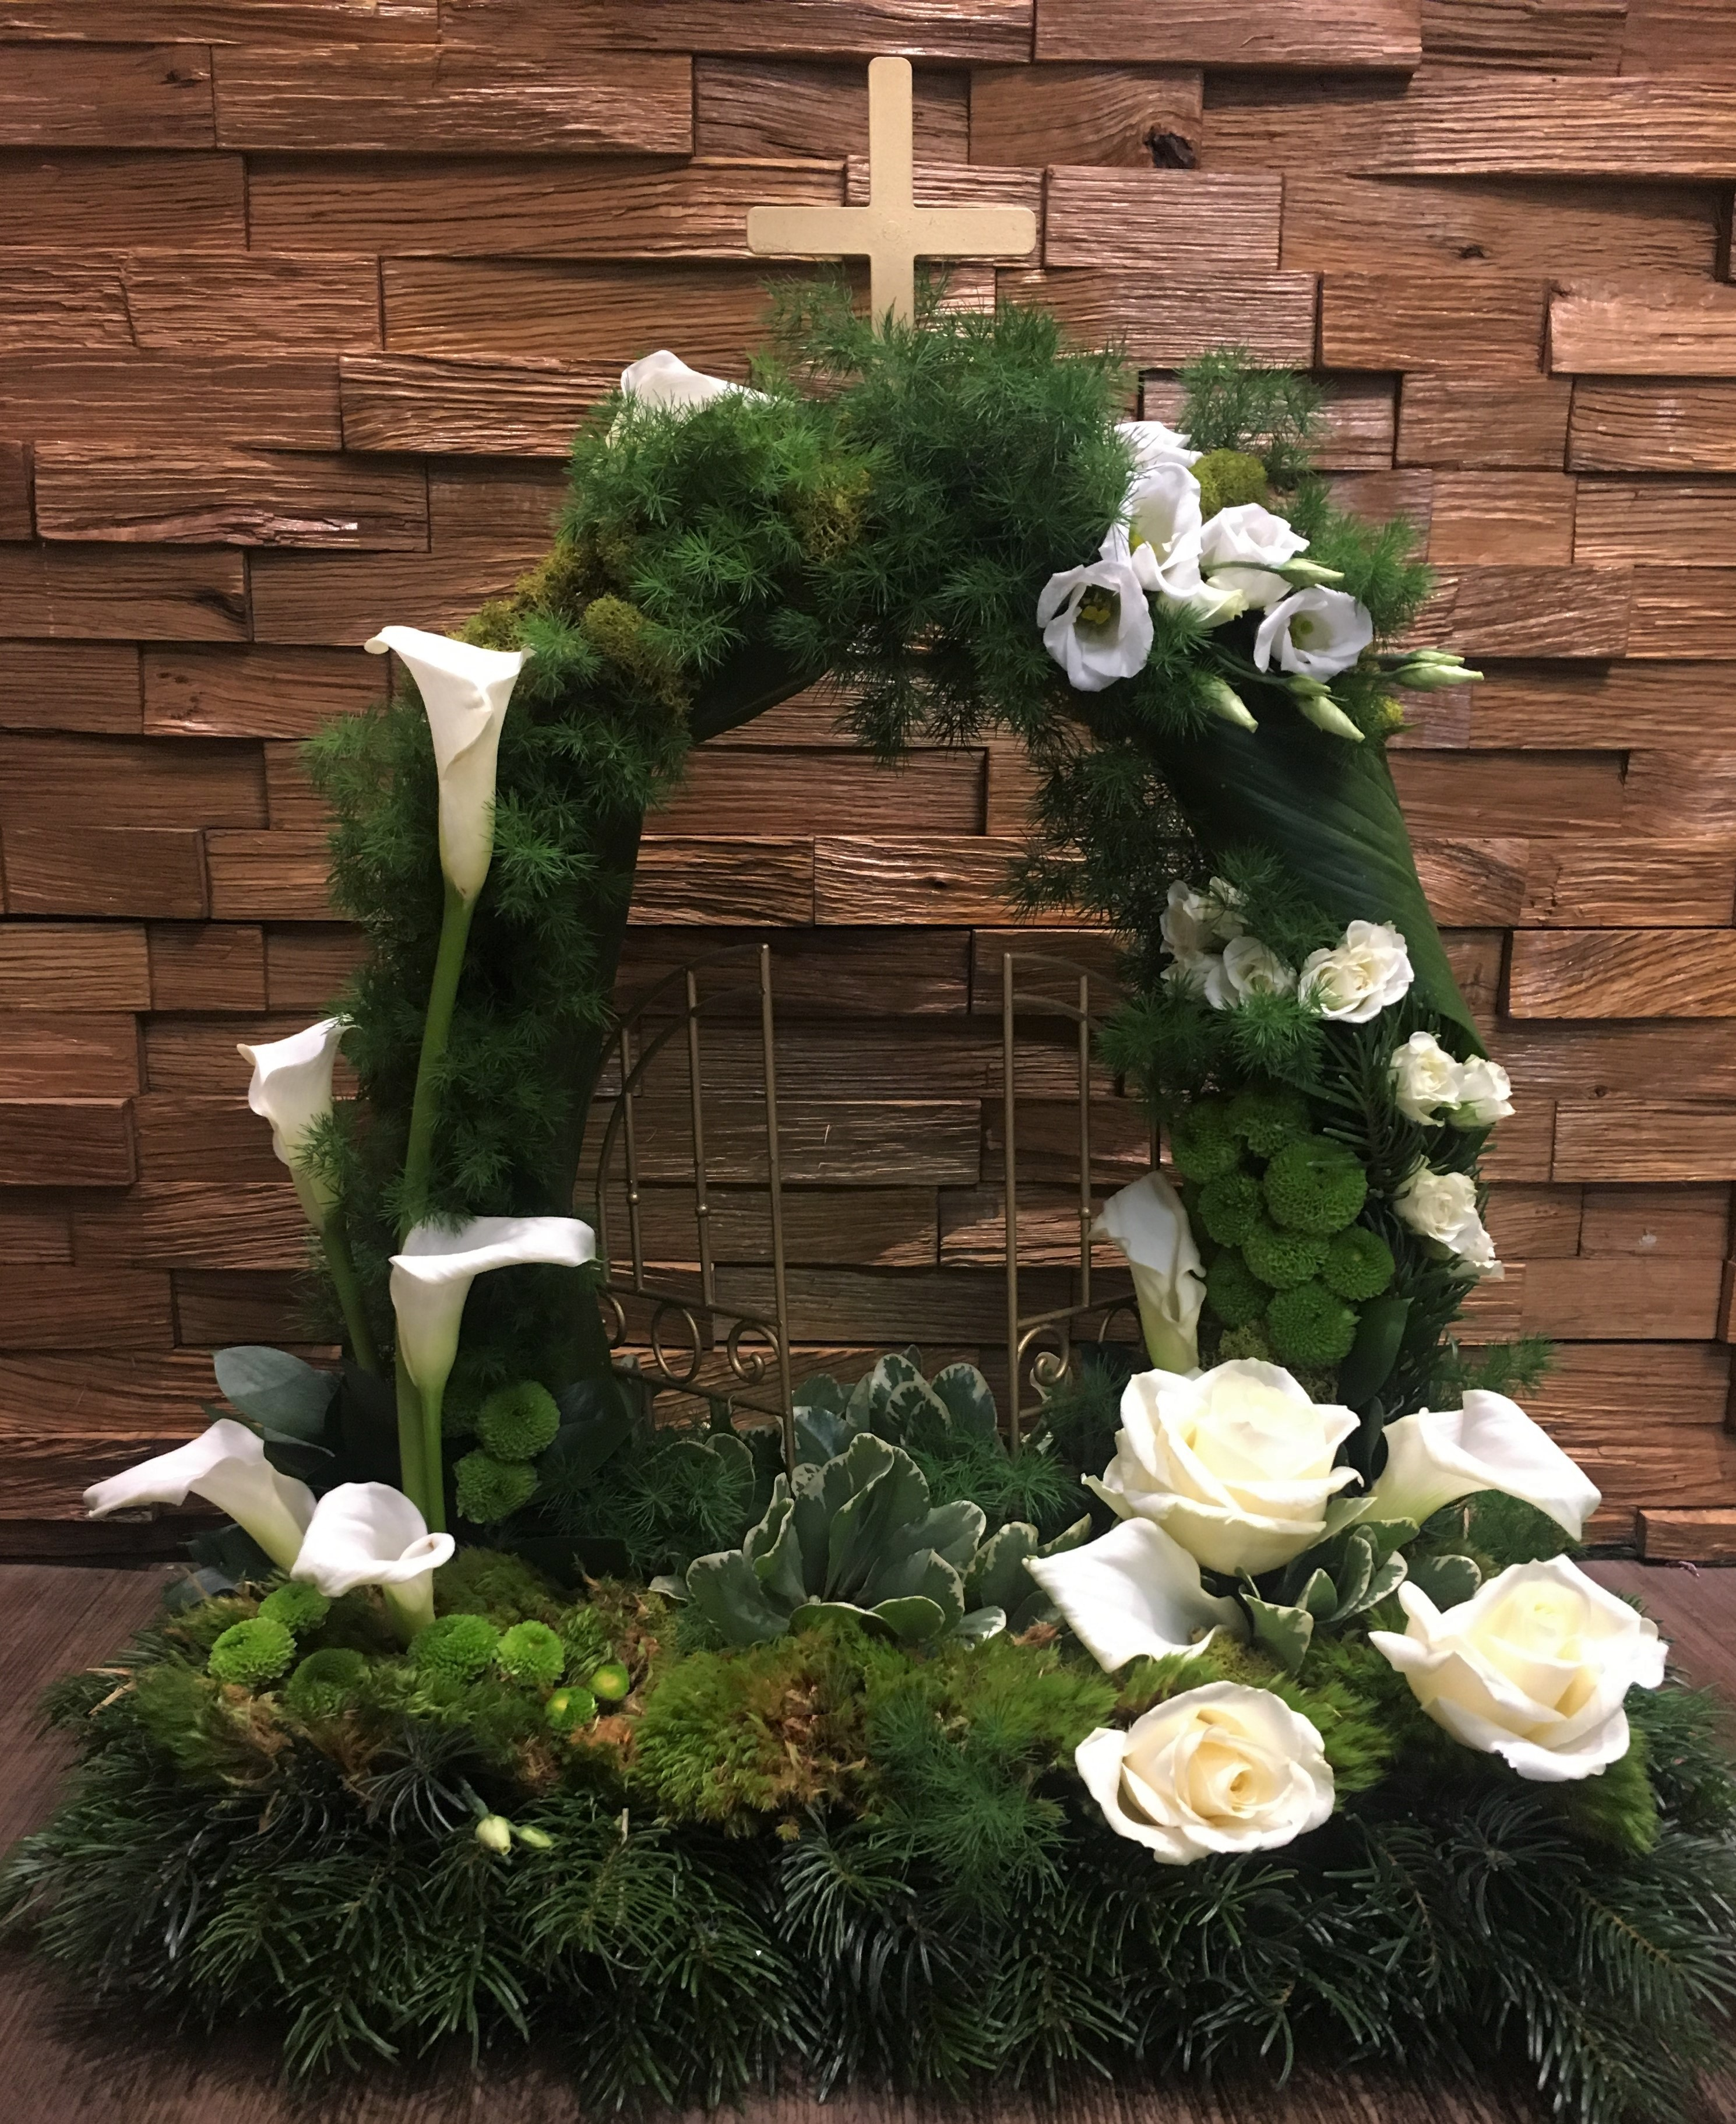 bespoke fresh flowers in a woodland rustic GATES OF HEAVEN clusters of fresh flowers tribute FLORIST IN STUDLEY REDDITCH ALCESTER